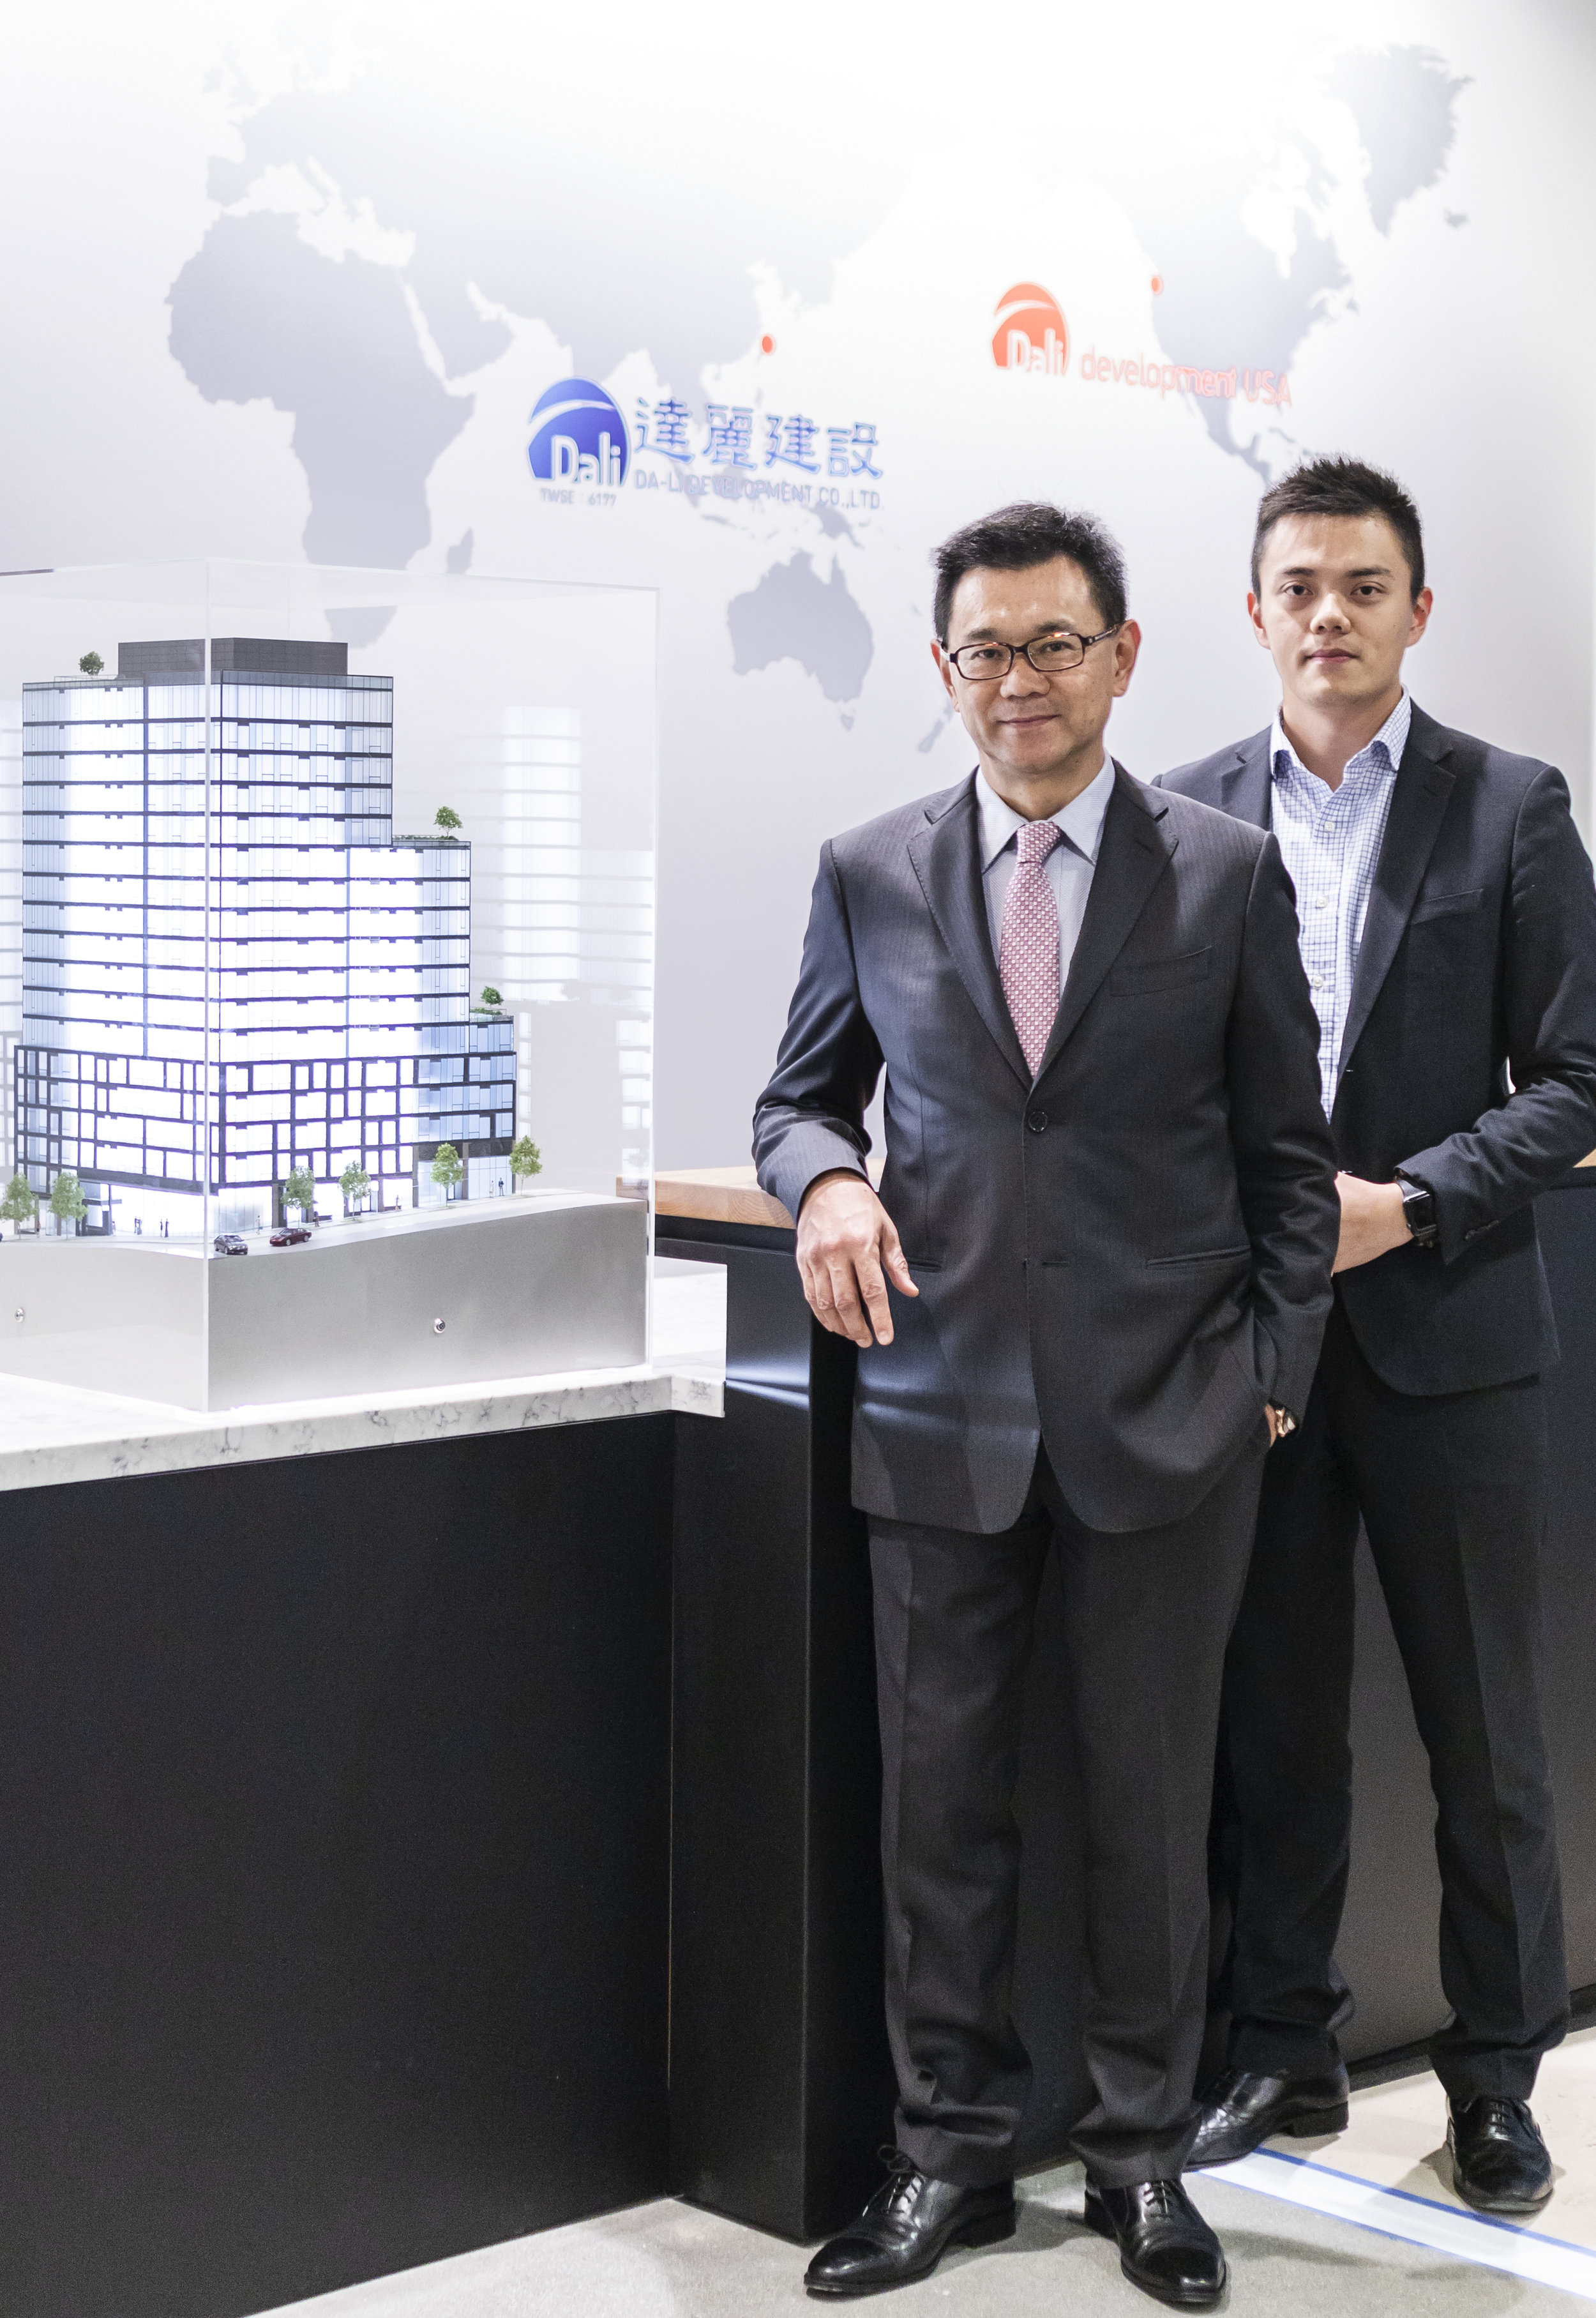 Da-Li Development USA Chairman James Hsieh, left, and his son and company Vice President Kevin Hsieh have opened a regional development office in Seattle's Pioneer Square. They're standing next to a model of Koda, a 17-story condominium project. Da-Li plans to break ground on the project this winter as it begins planning a second tower near the Space Needle.  REALOGICS SOTHEBY'S INTERNATIONAL REALTY